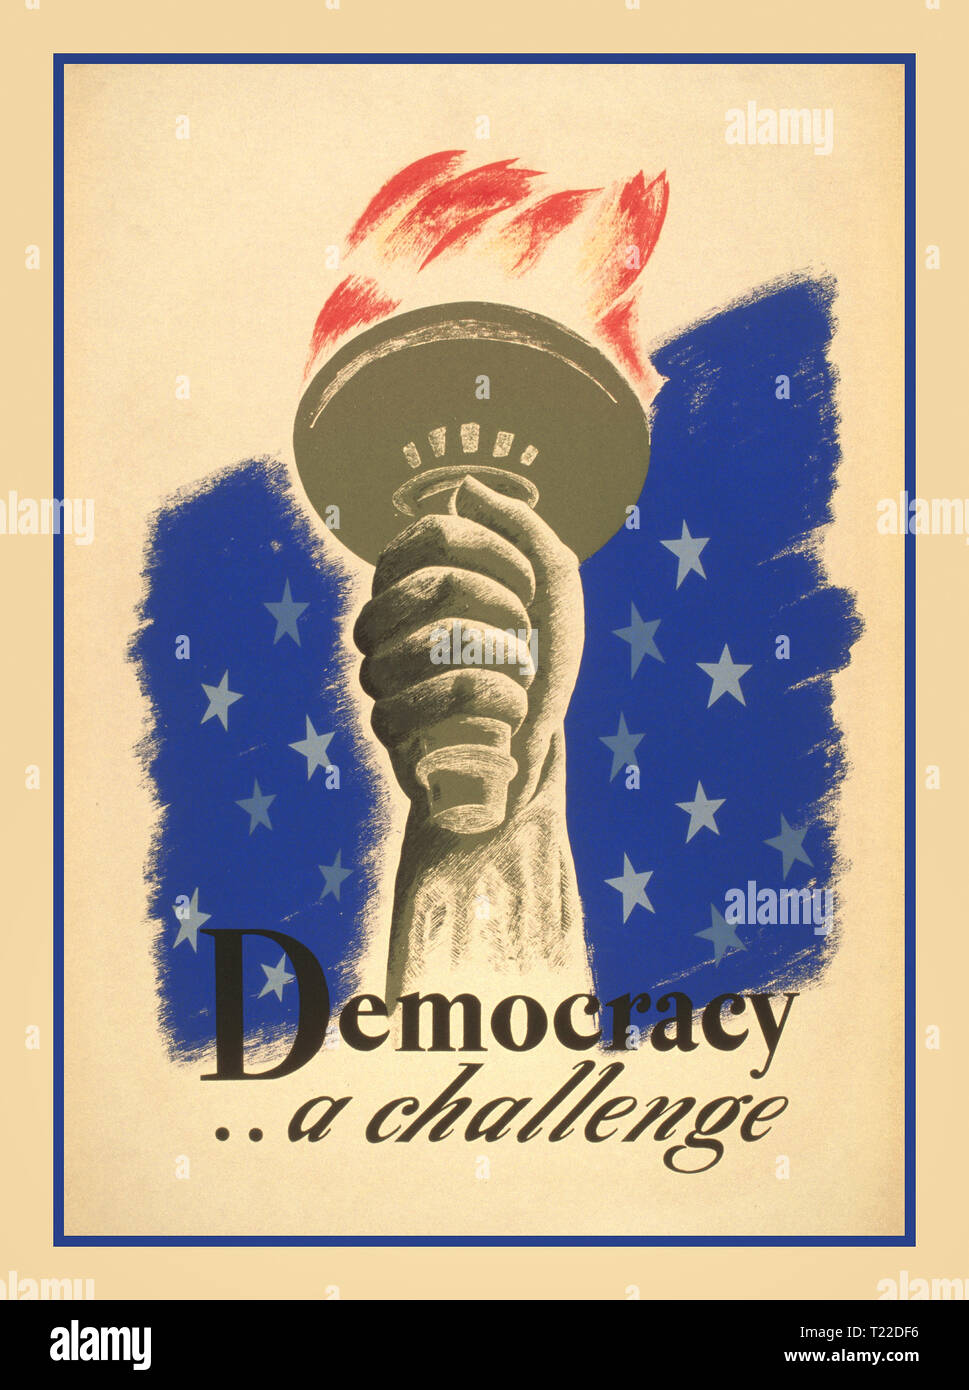 """""""Democracy .. a challenge"""" American WW2 Propaganda Poster for Democracy showing the hand and torch of the Statue of Liberty. 1940.World War II - Stock Image"""